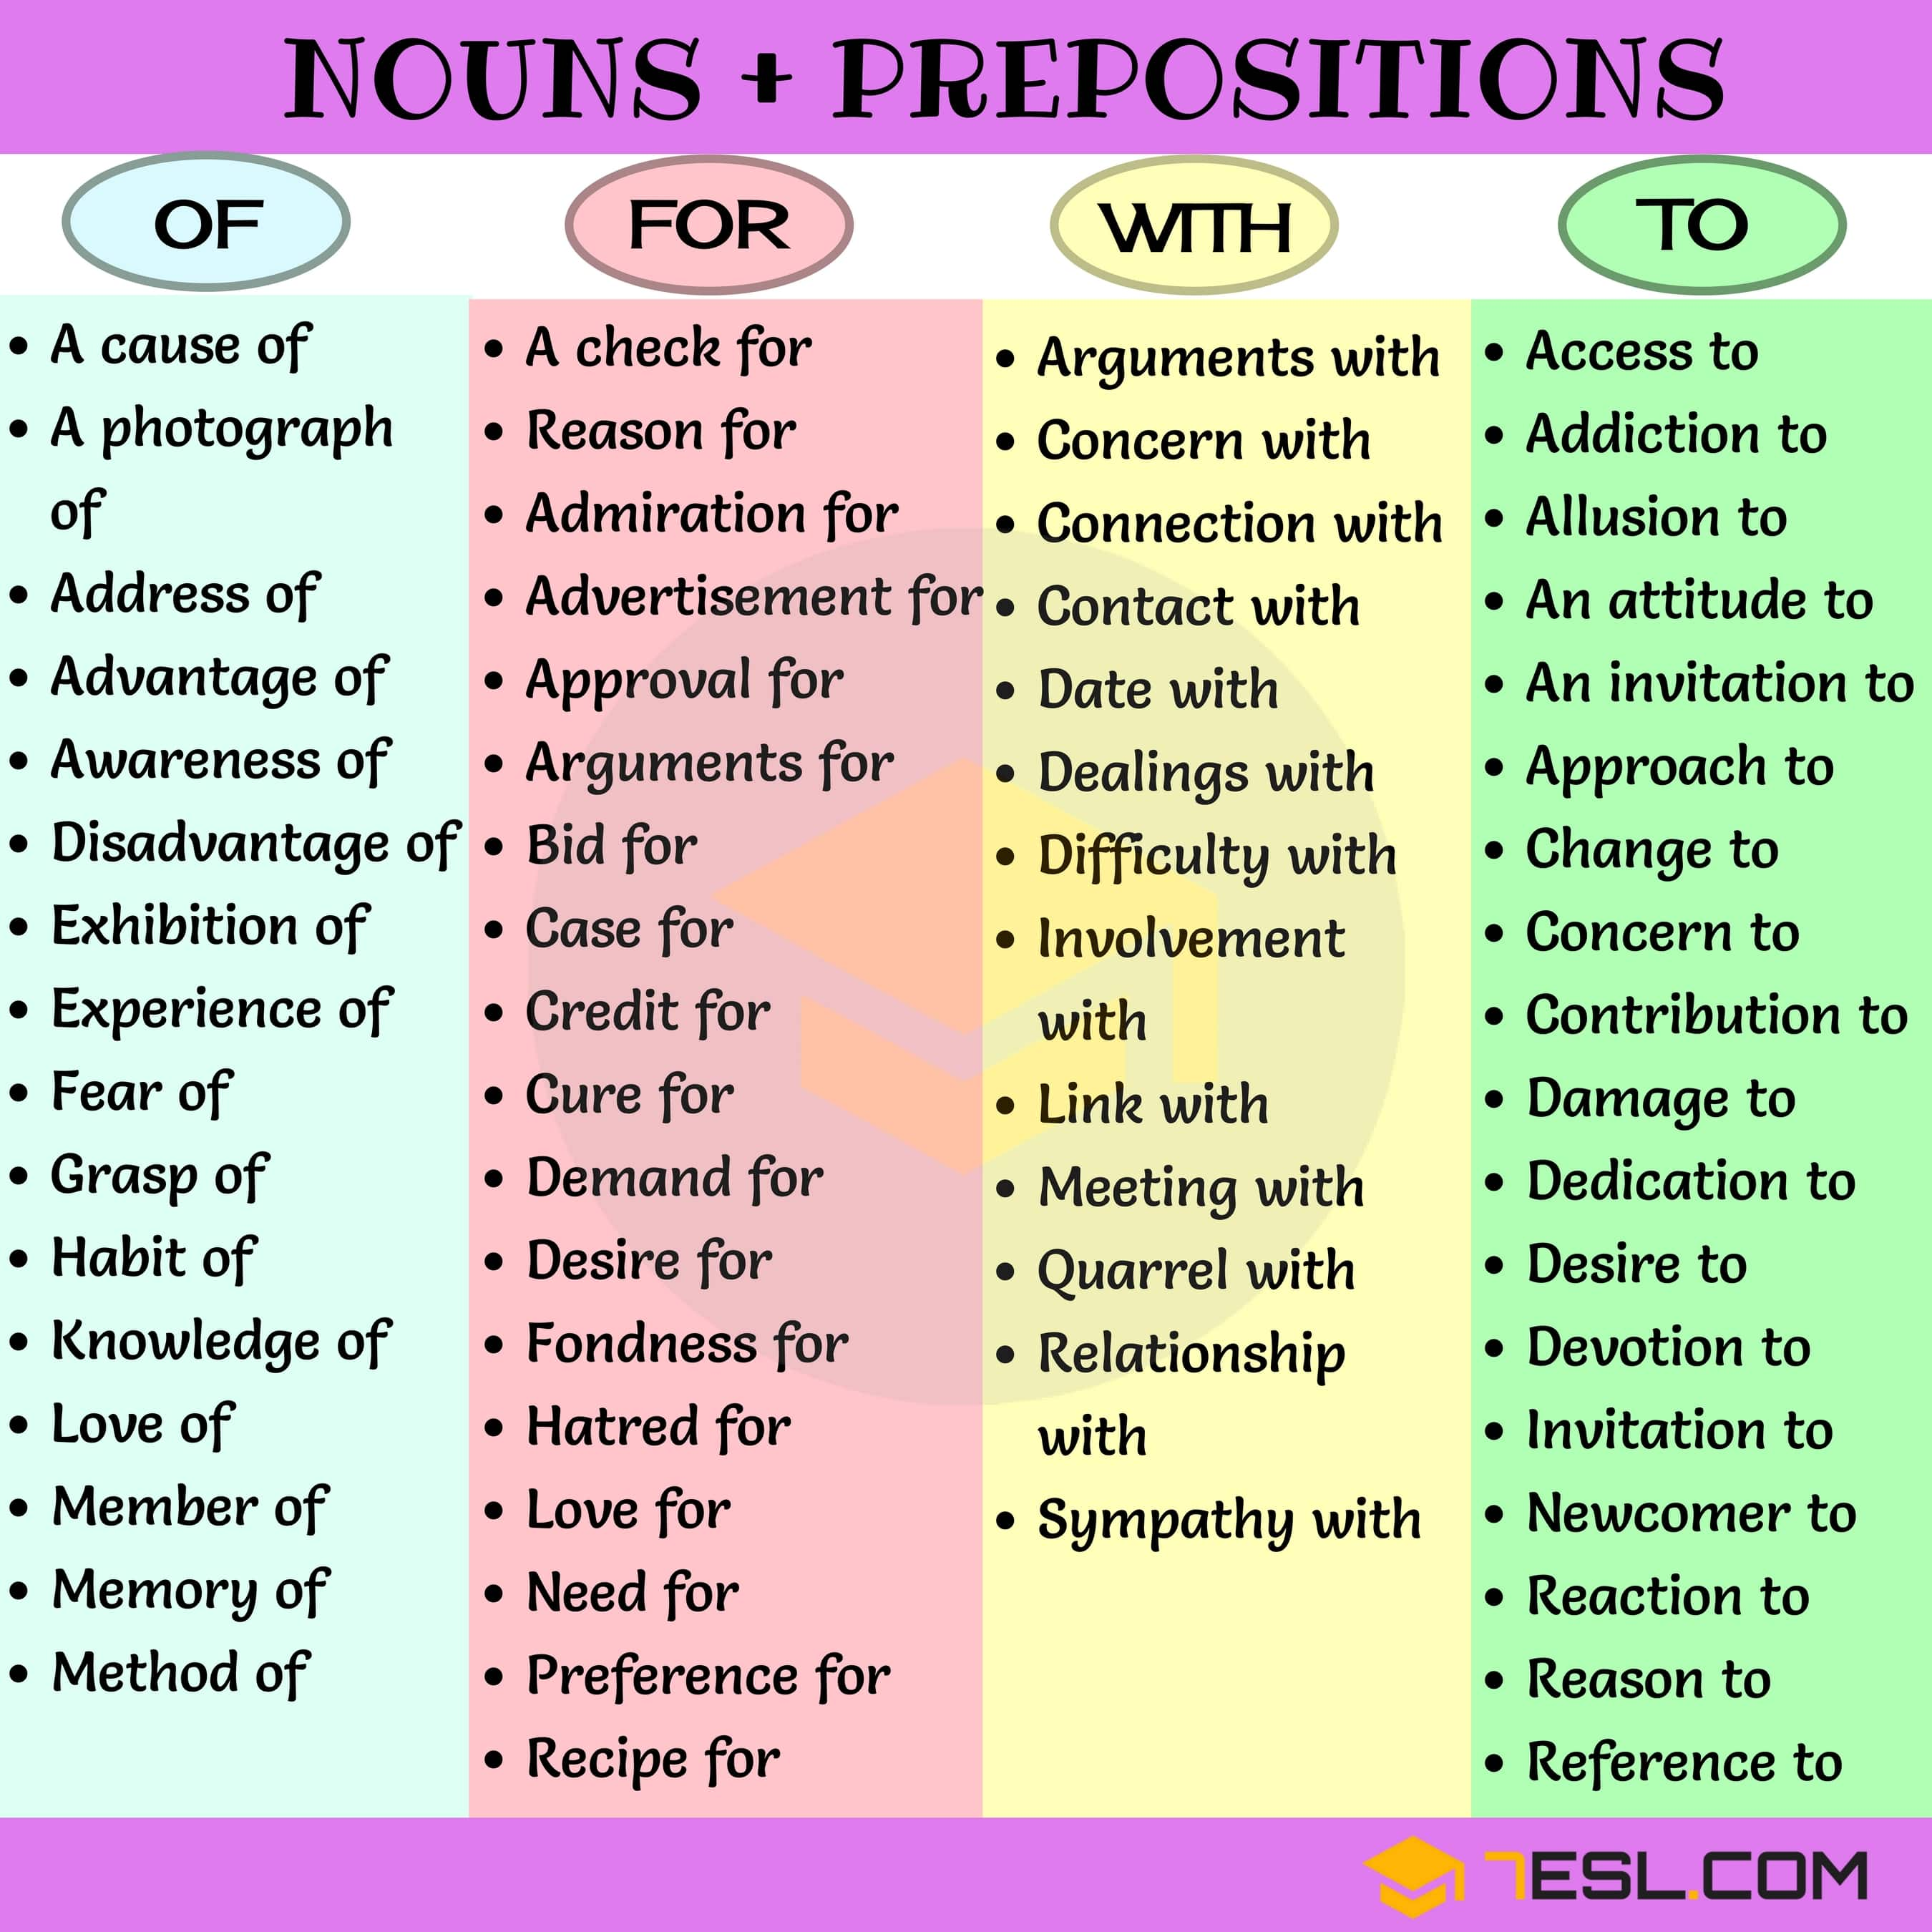 Common Noun & Preposition Collocations in English - 7 E S L